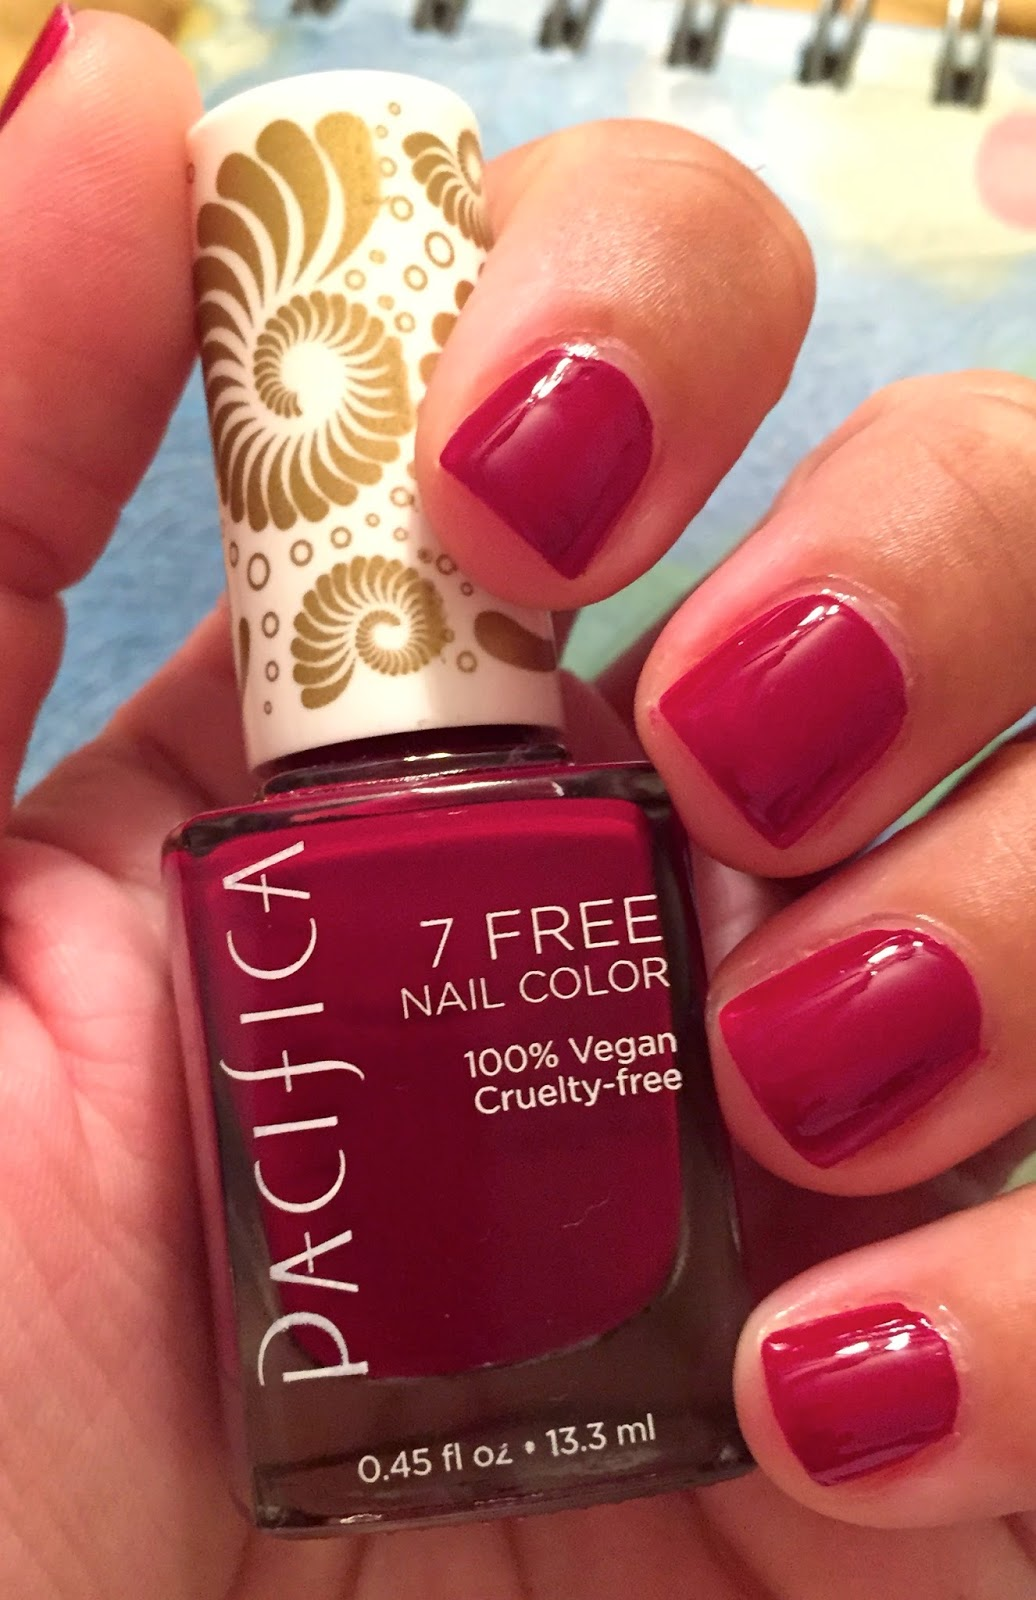 My Beauty Full Blog: Pacifica 7 Free Nail Color NOTD